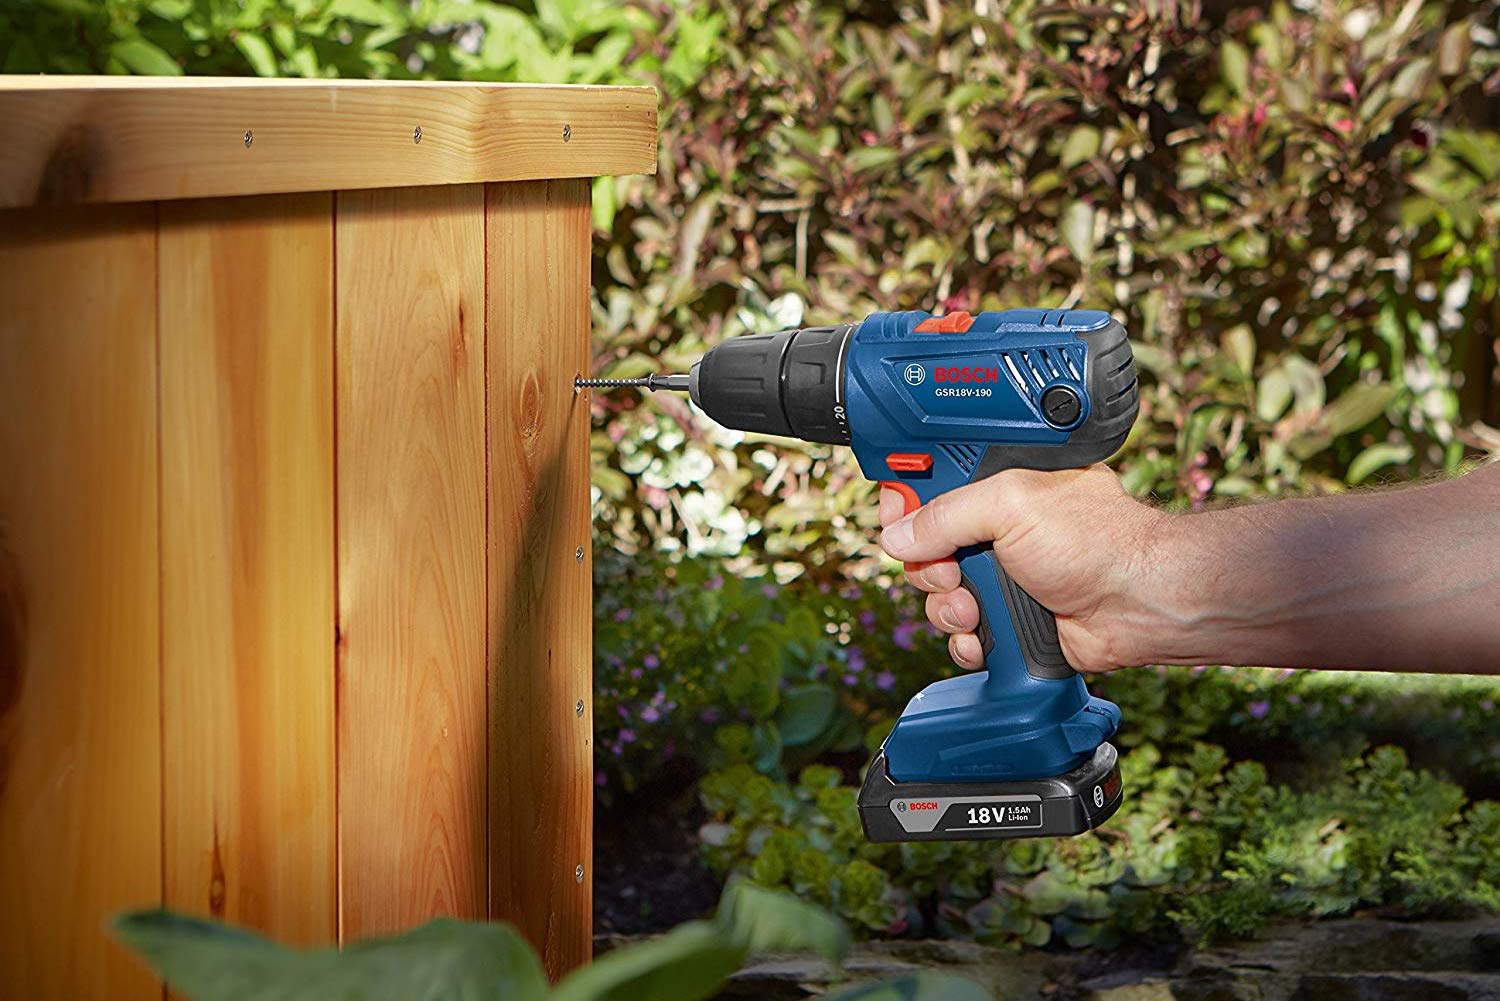 Top 5 Best Cordless Drill Power Tools For Woodworking Reviews